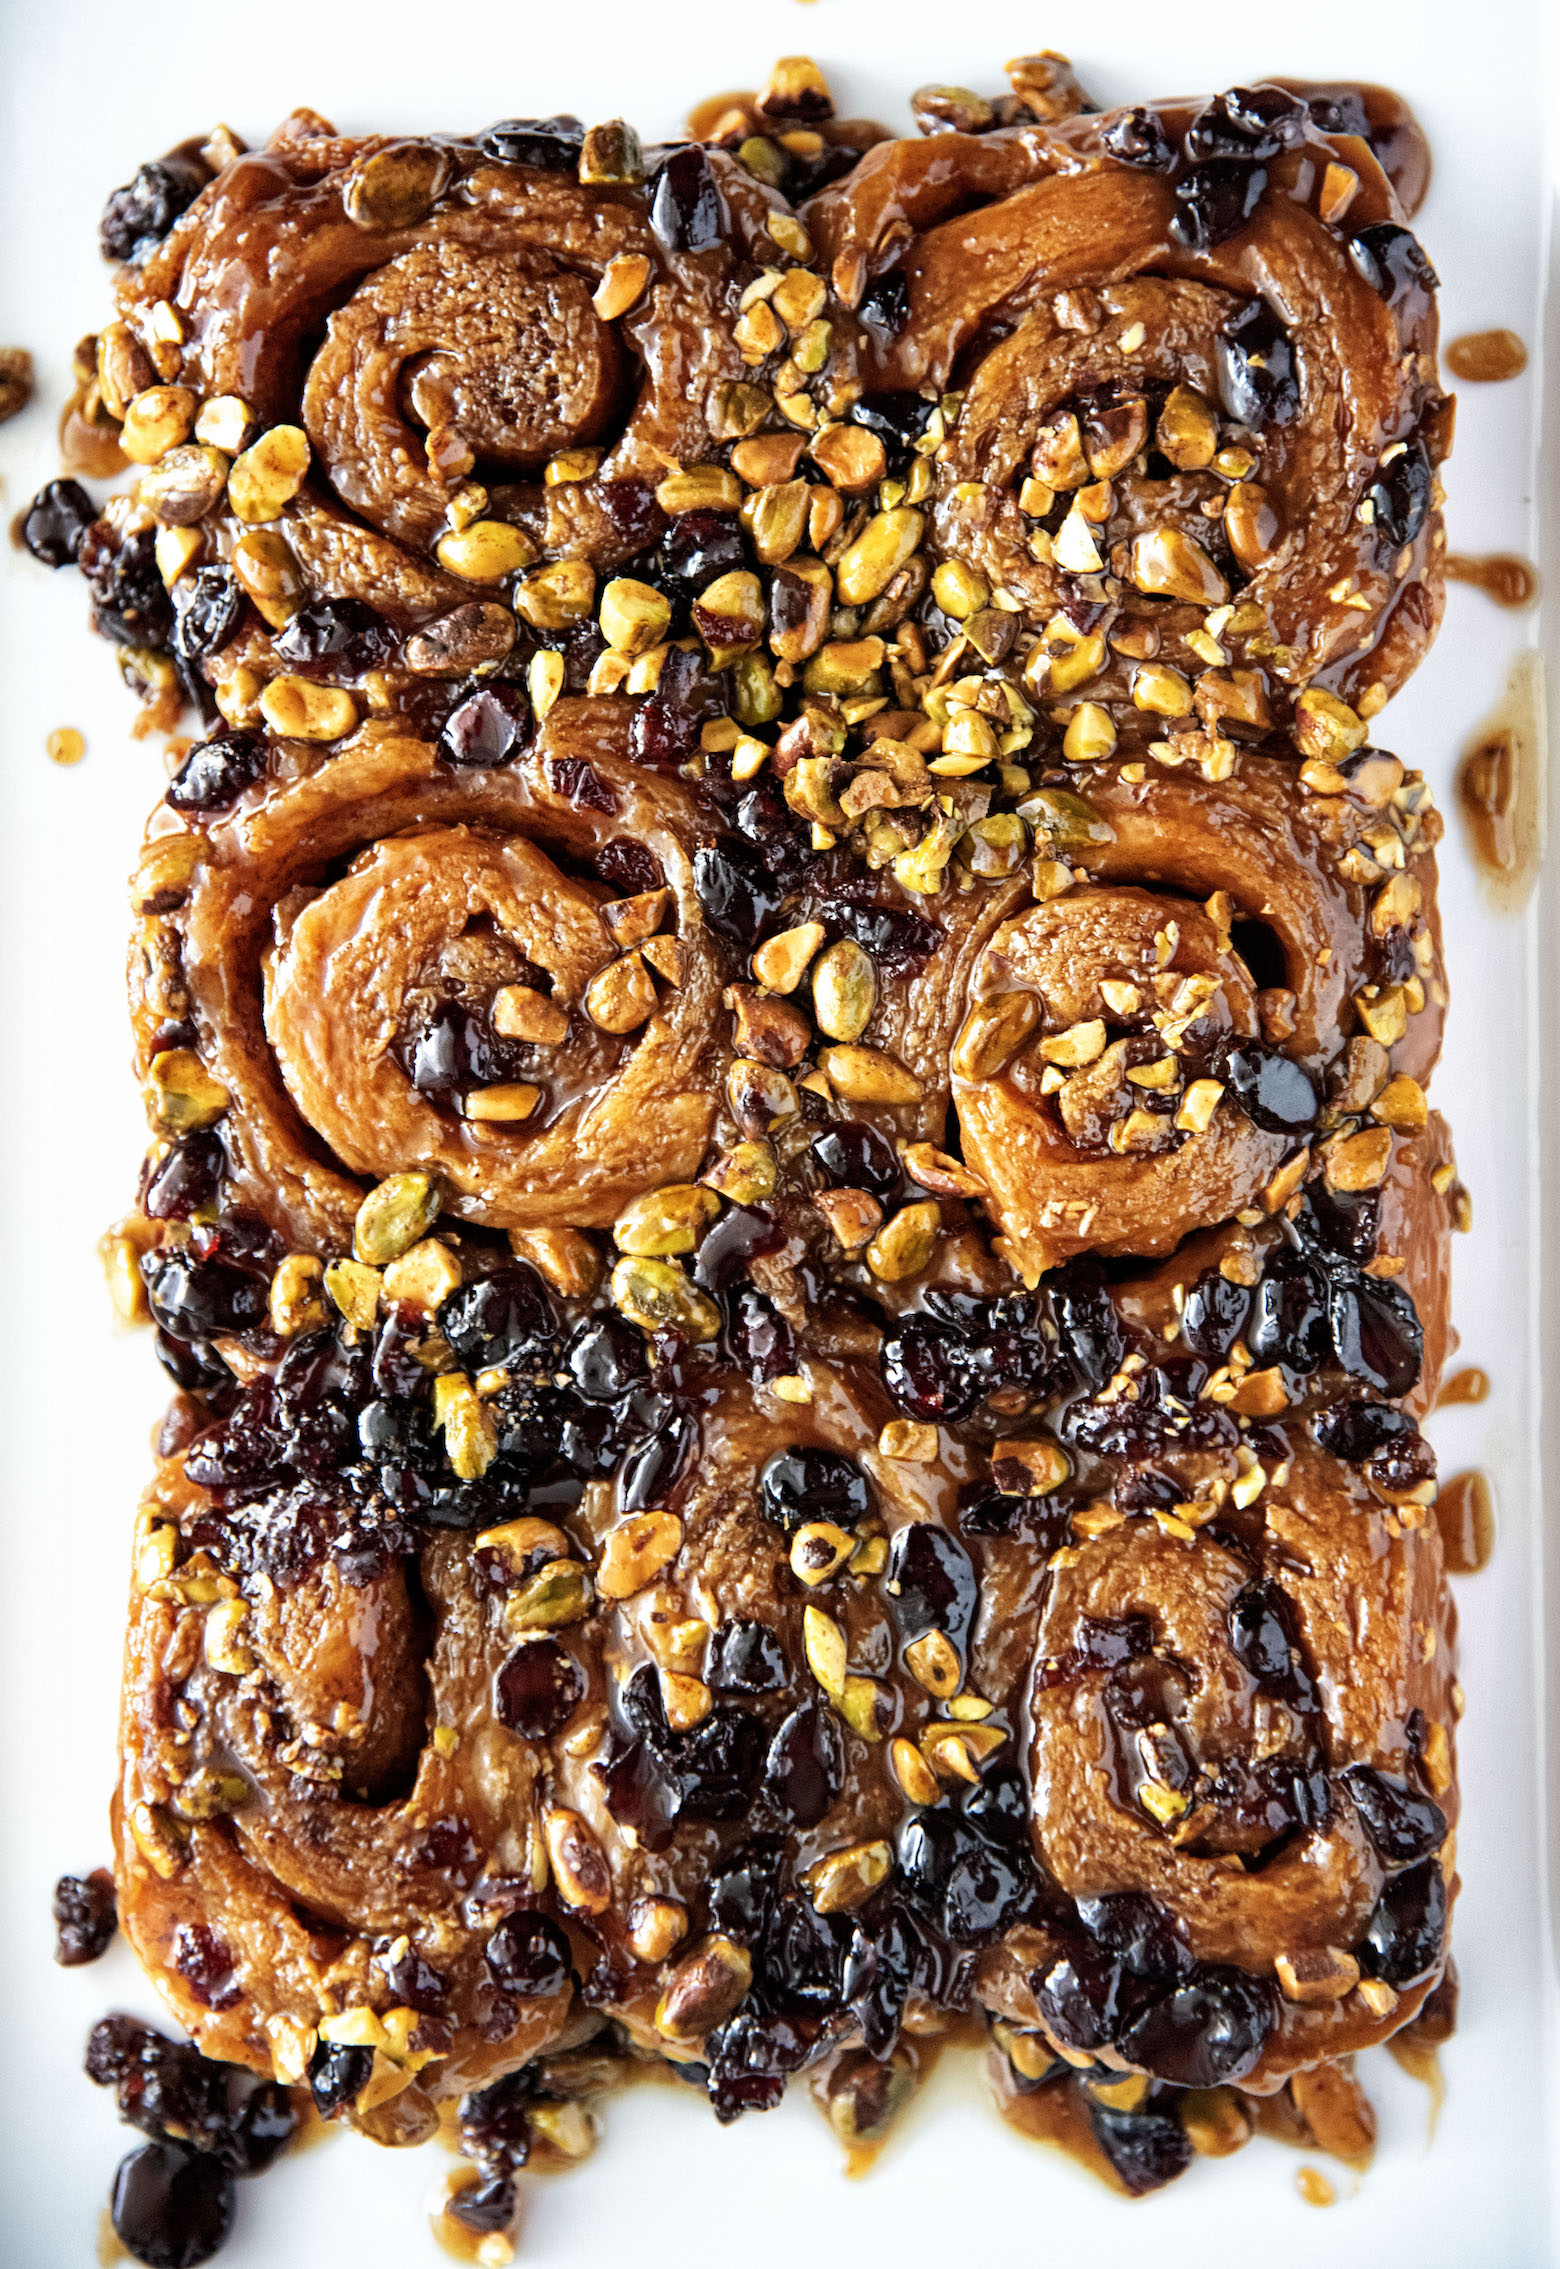 Orange Blossom Honey Pistachio Cranberry Sticky Buns